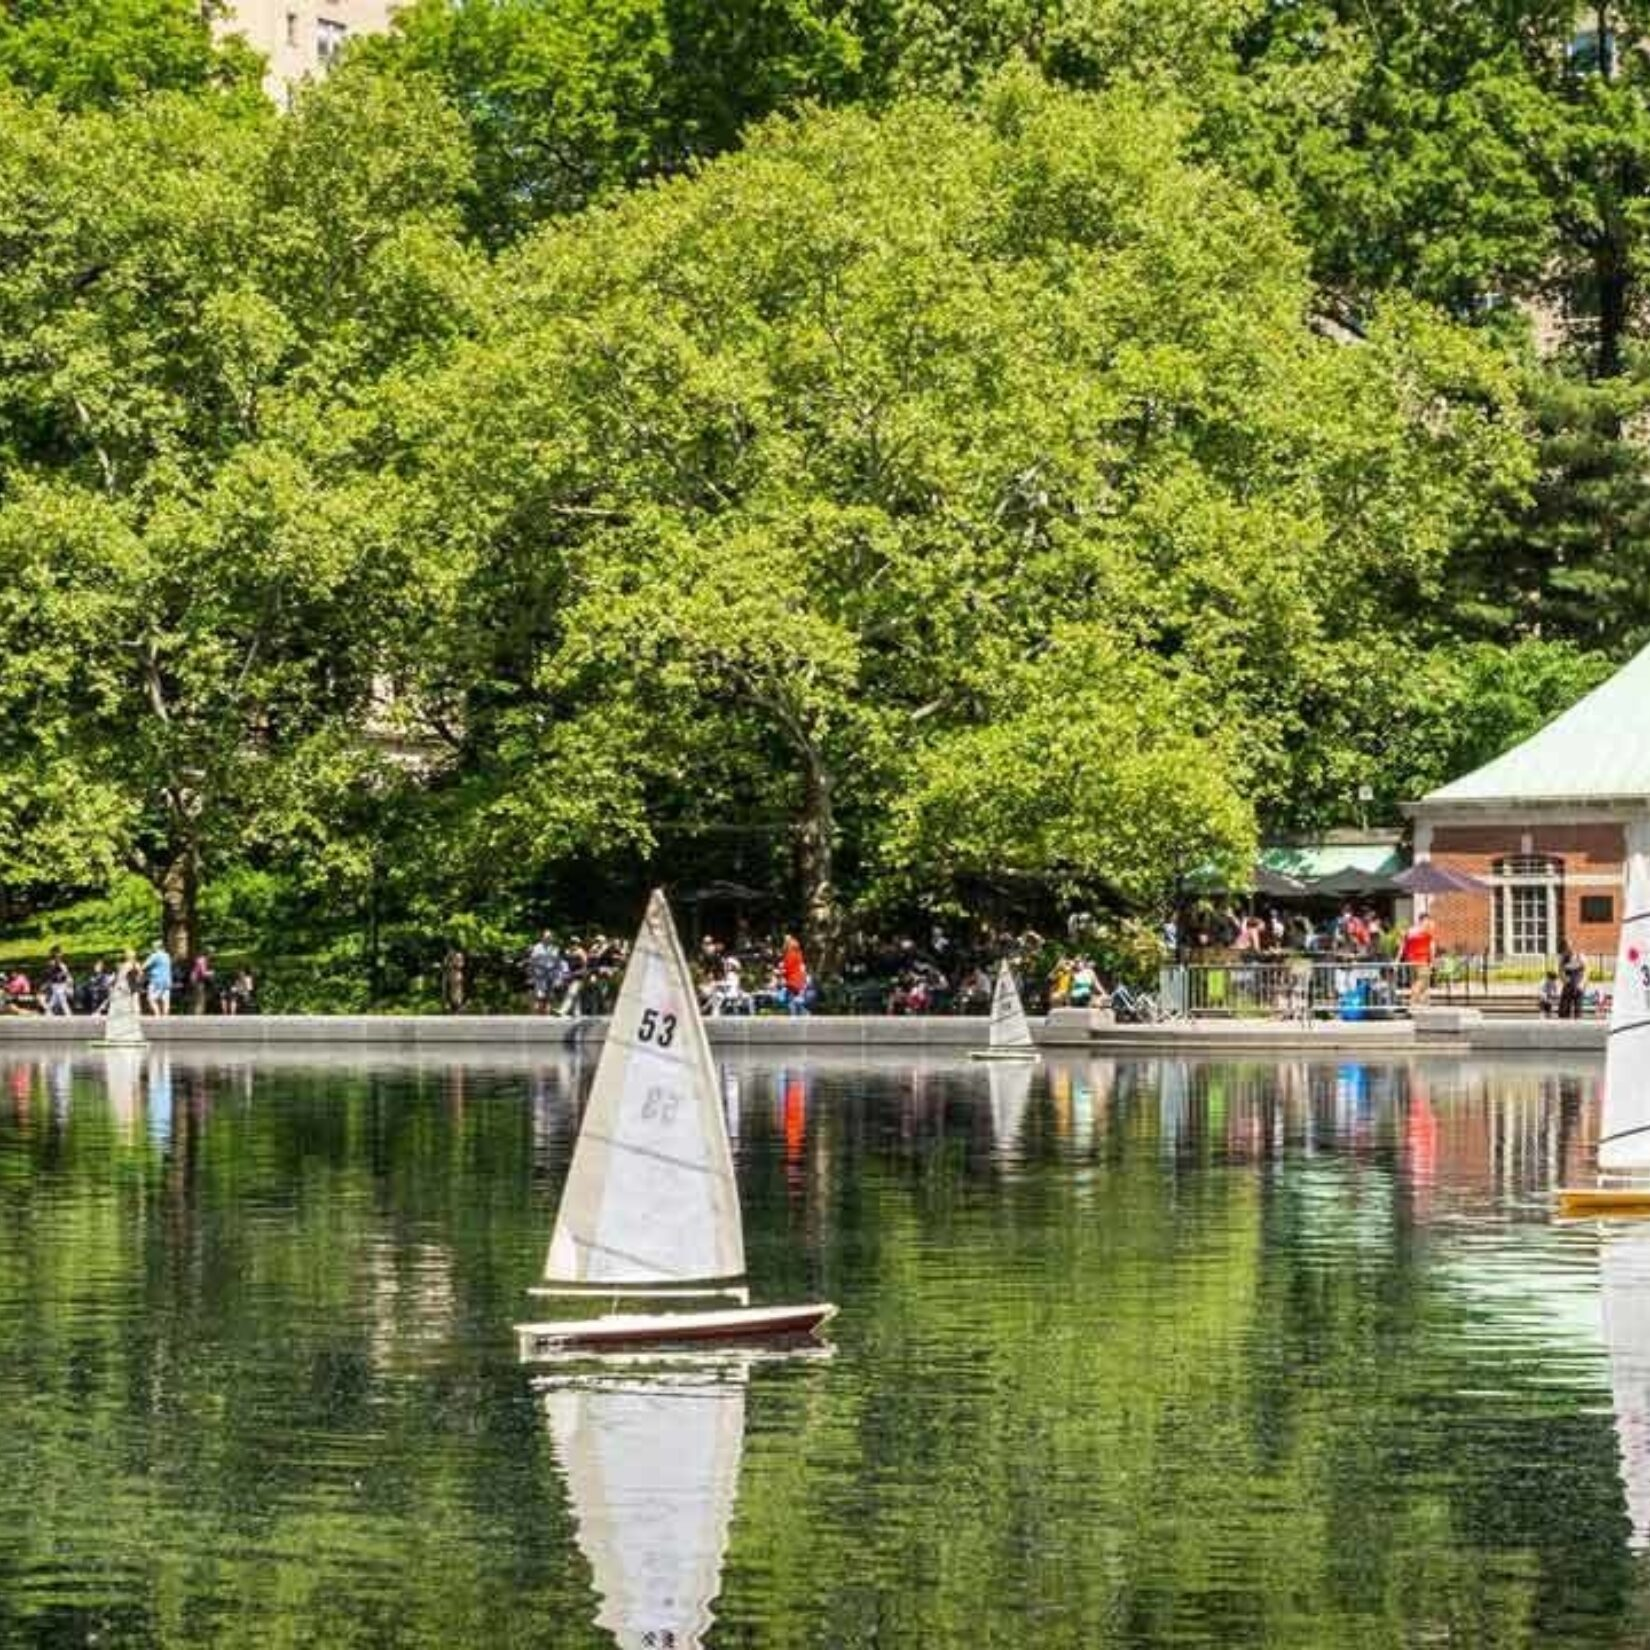 Model sailboats are reflected in the stillness of Conservatory Water.